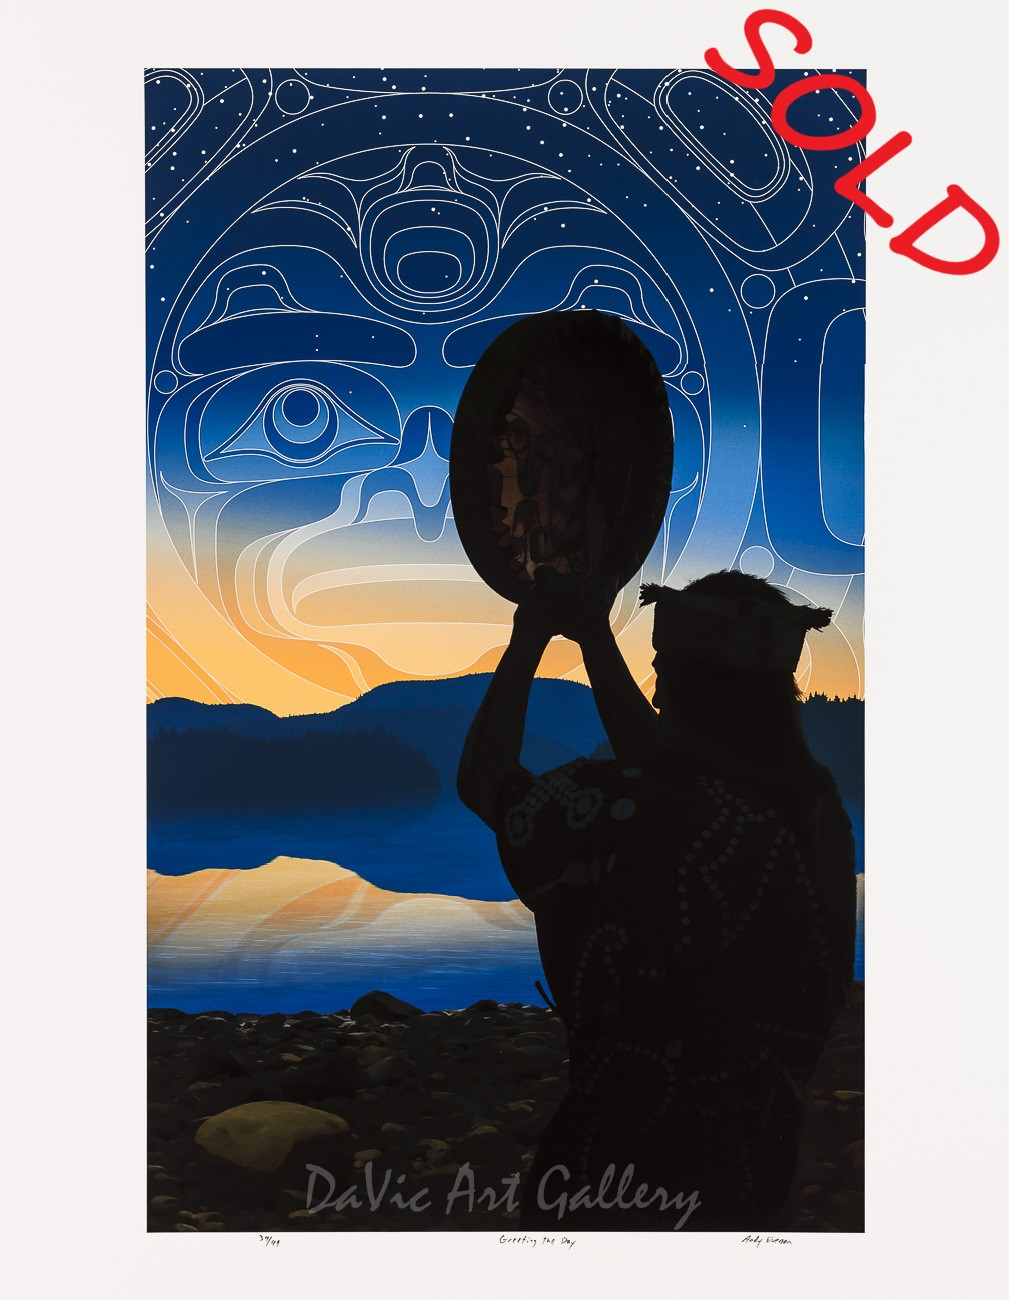 Greeting the Day by Andy Everson 2011 - Northwest Coast - Kwakwaka'wakw